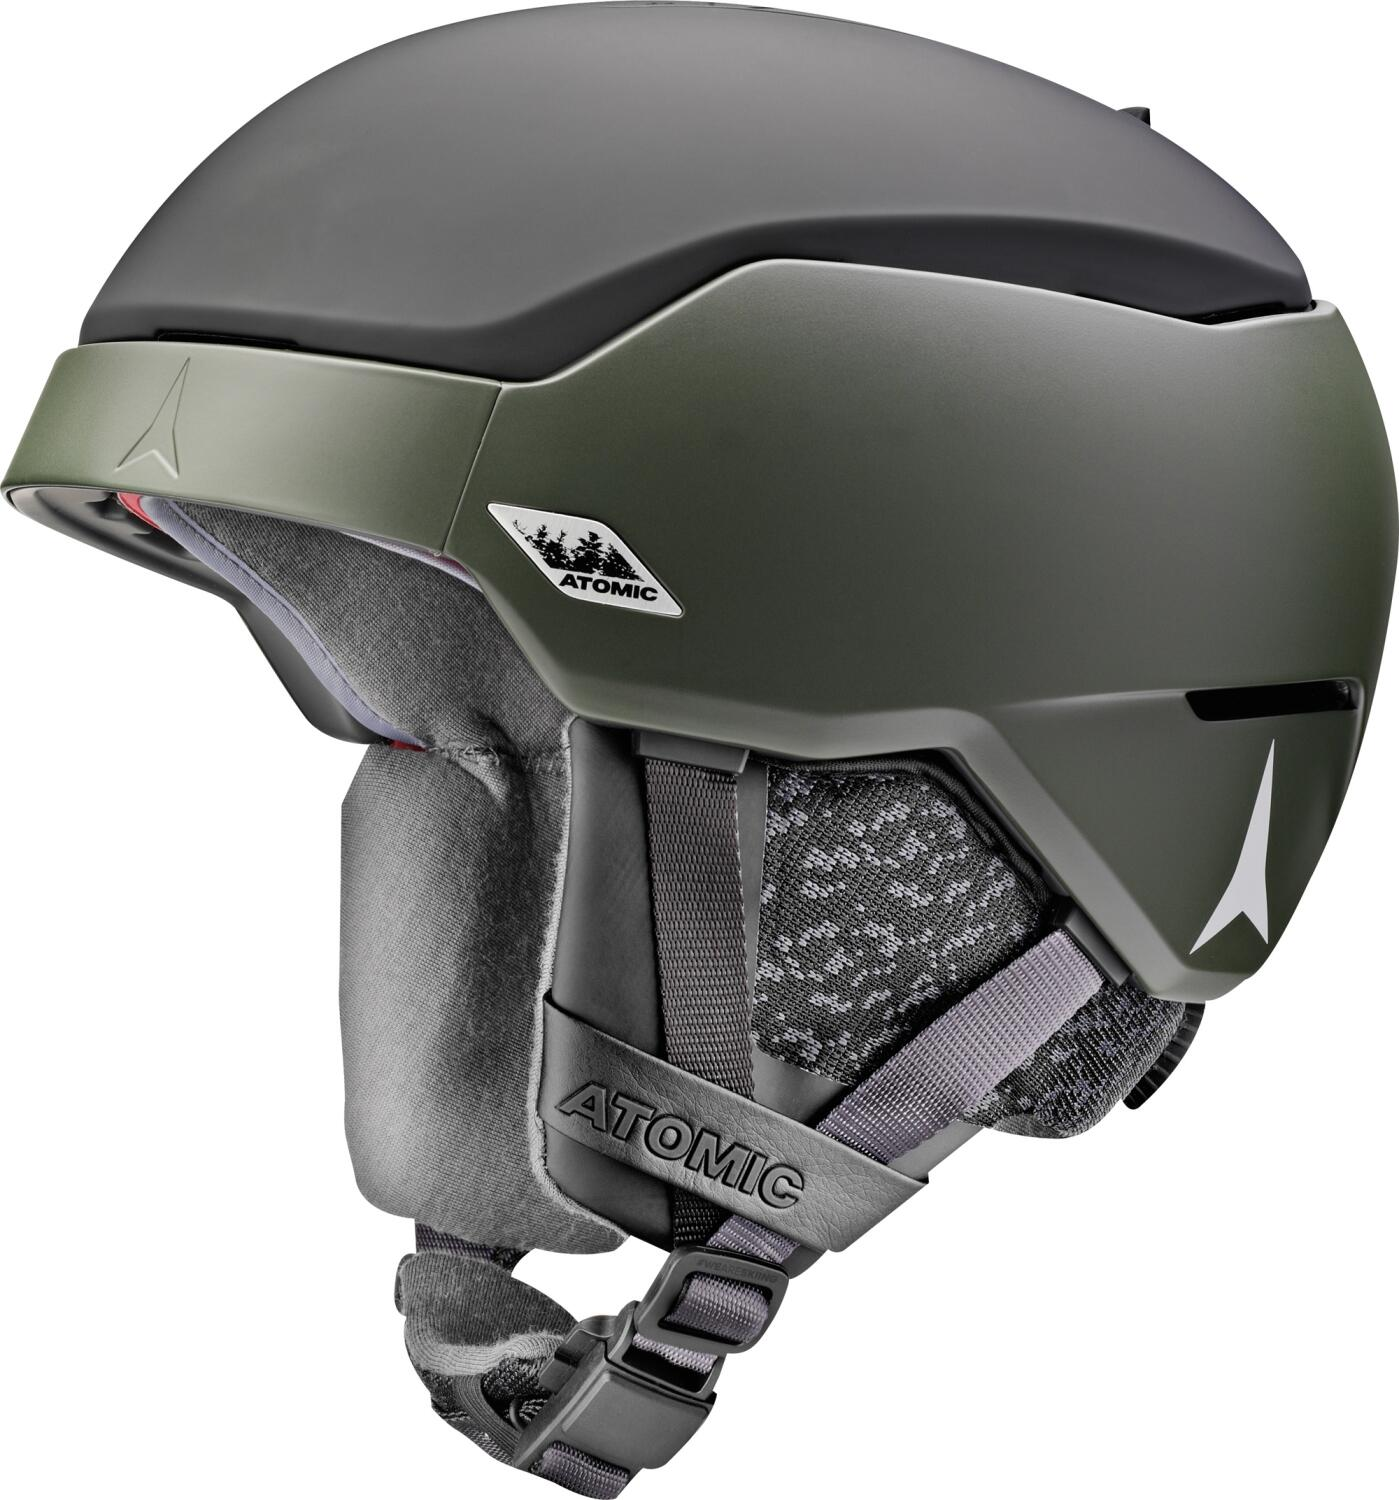 atomic-count-amid-skihelm-gr-ouml-szlig-e-51-55-cm-dark-green-